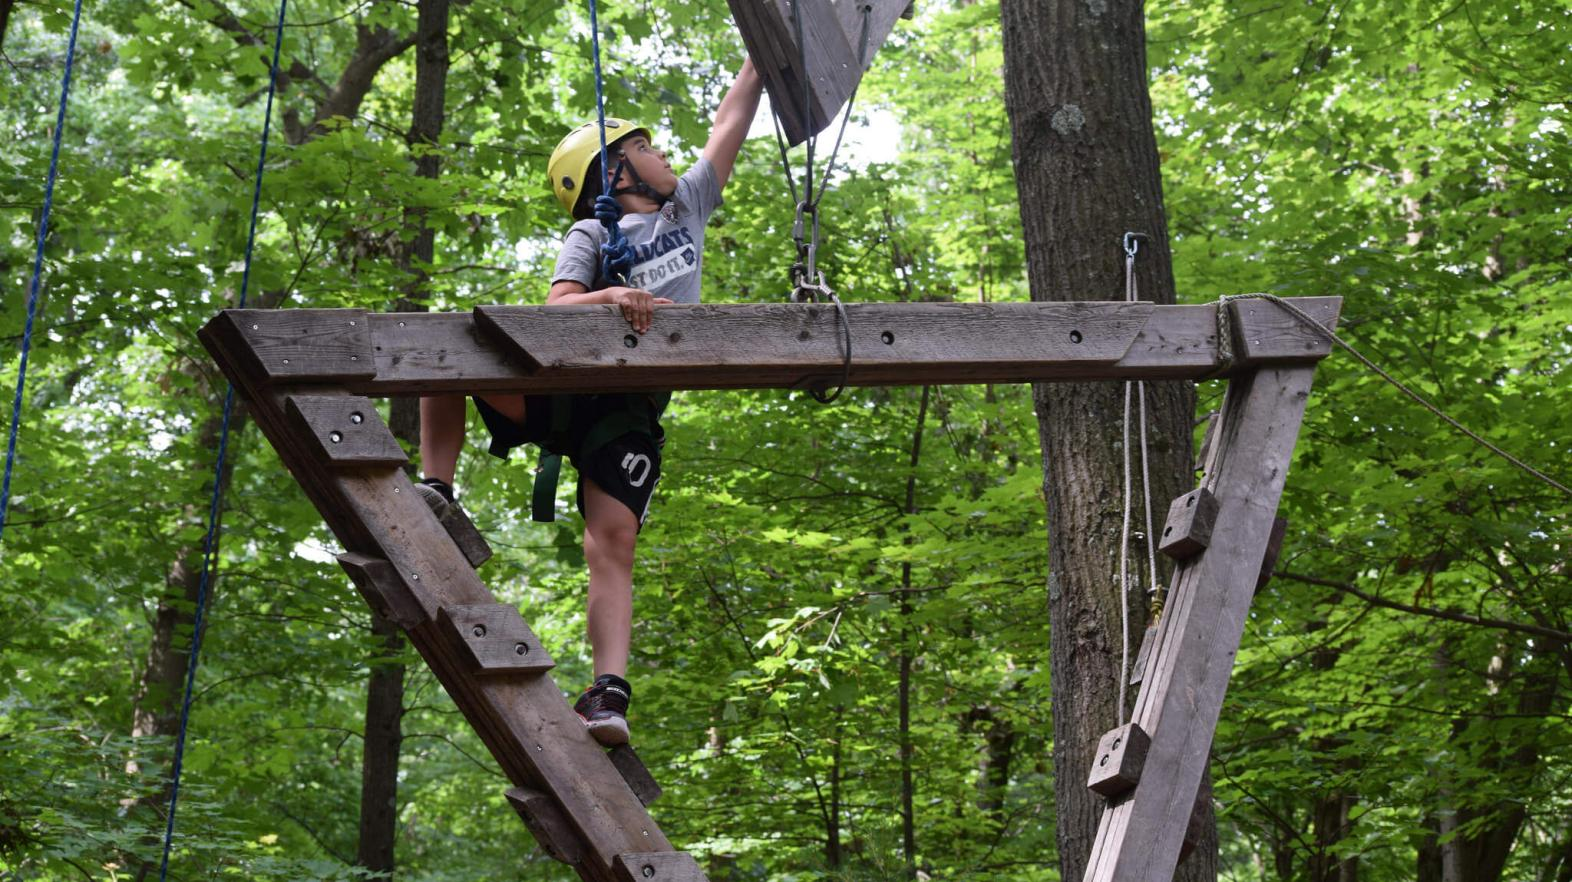 A camper climbs the rope course.